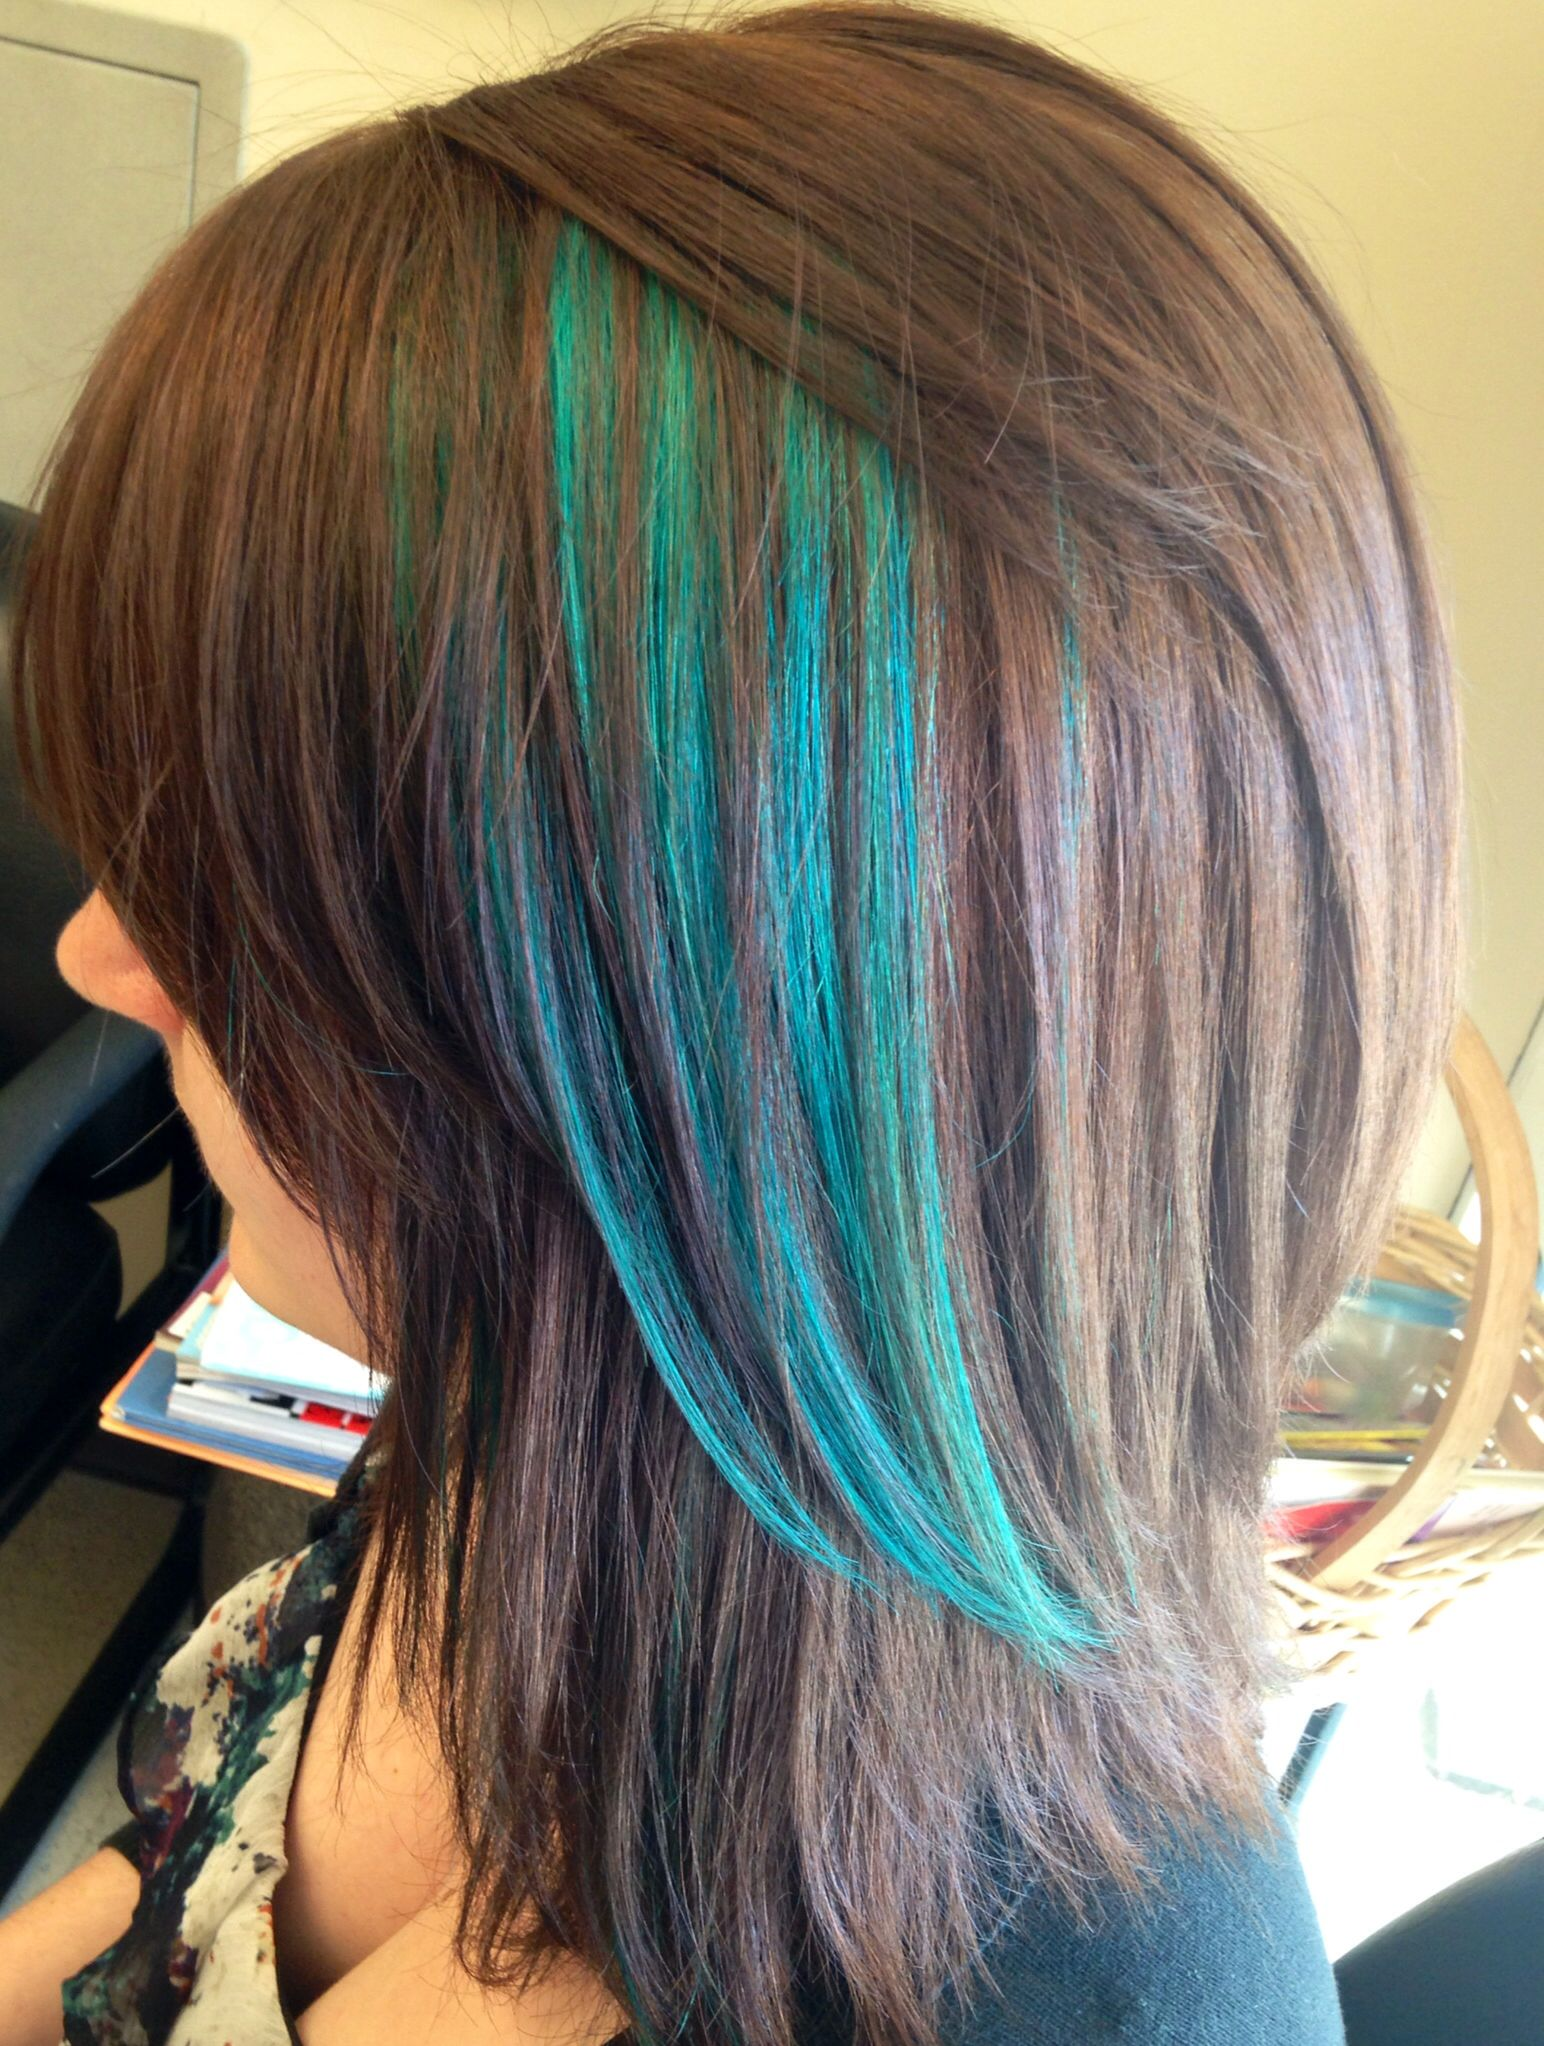 Teal Highlights Hair Streaks Peekaboo Hair Kids Hair Color